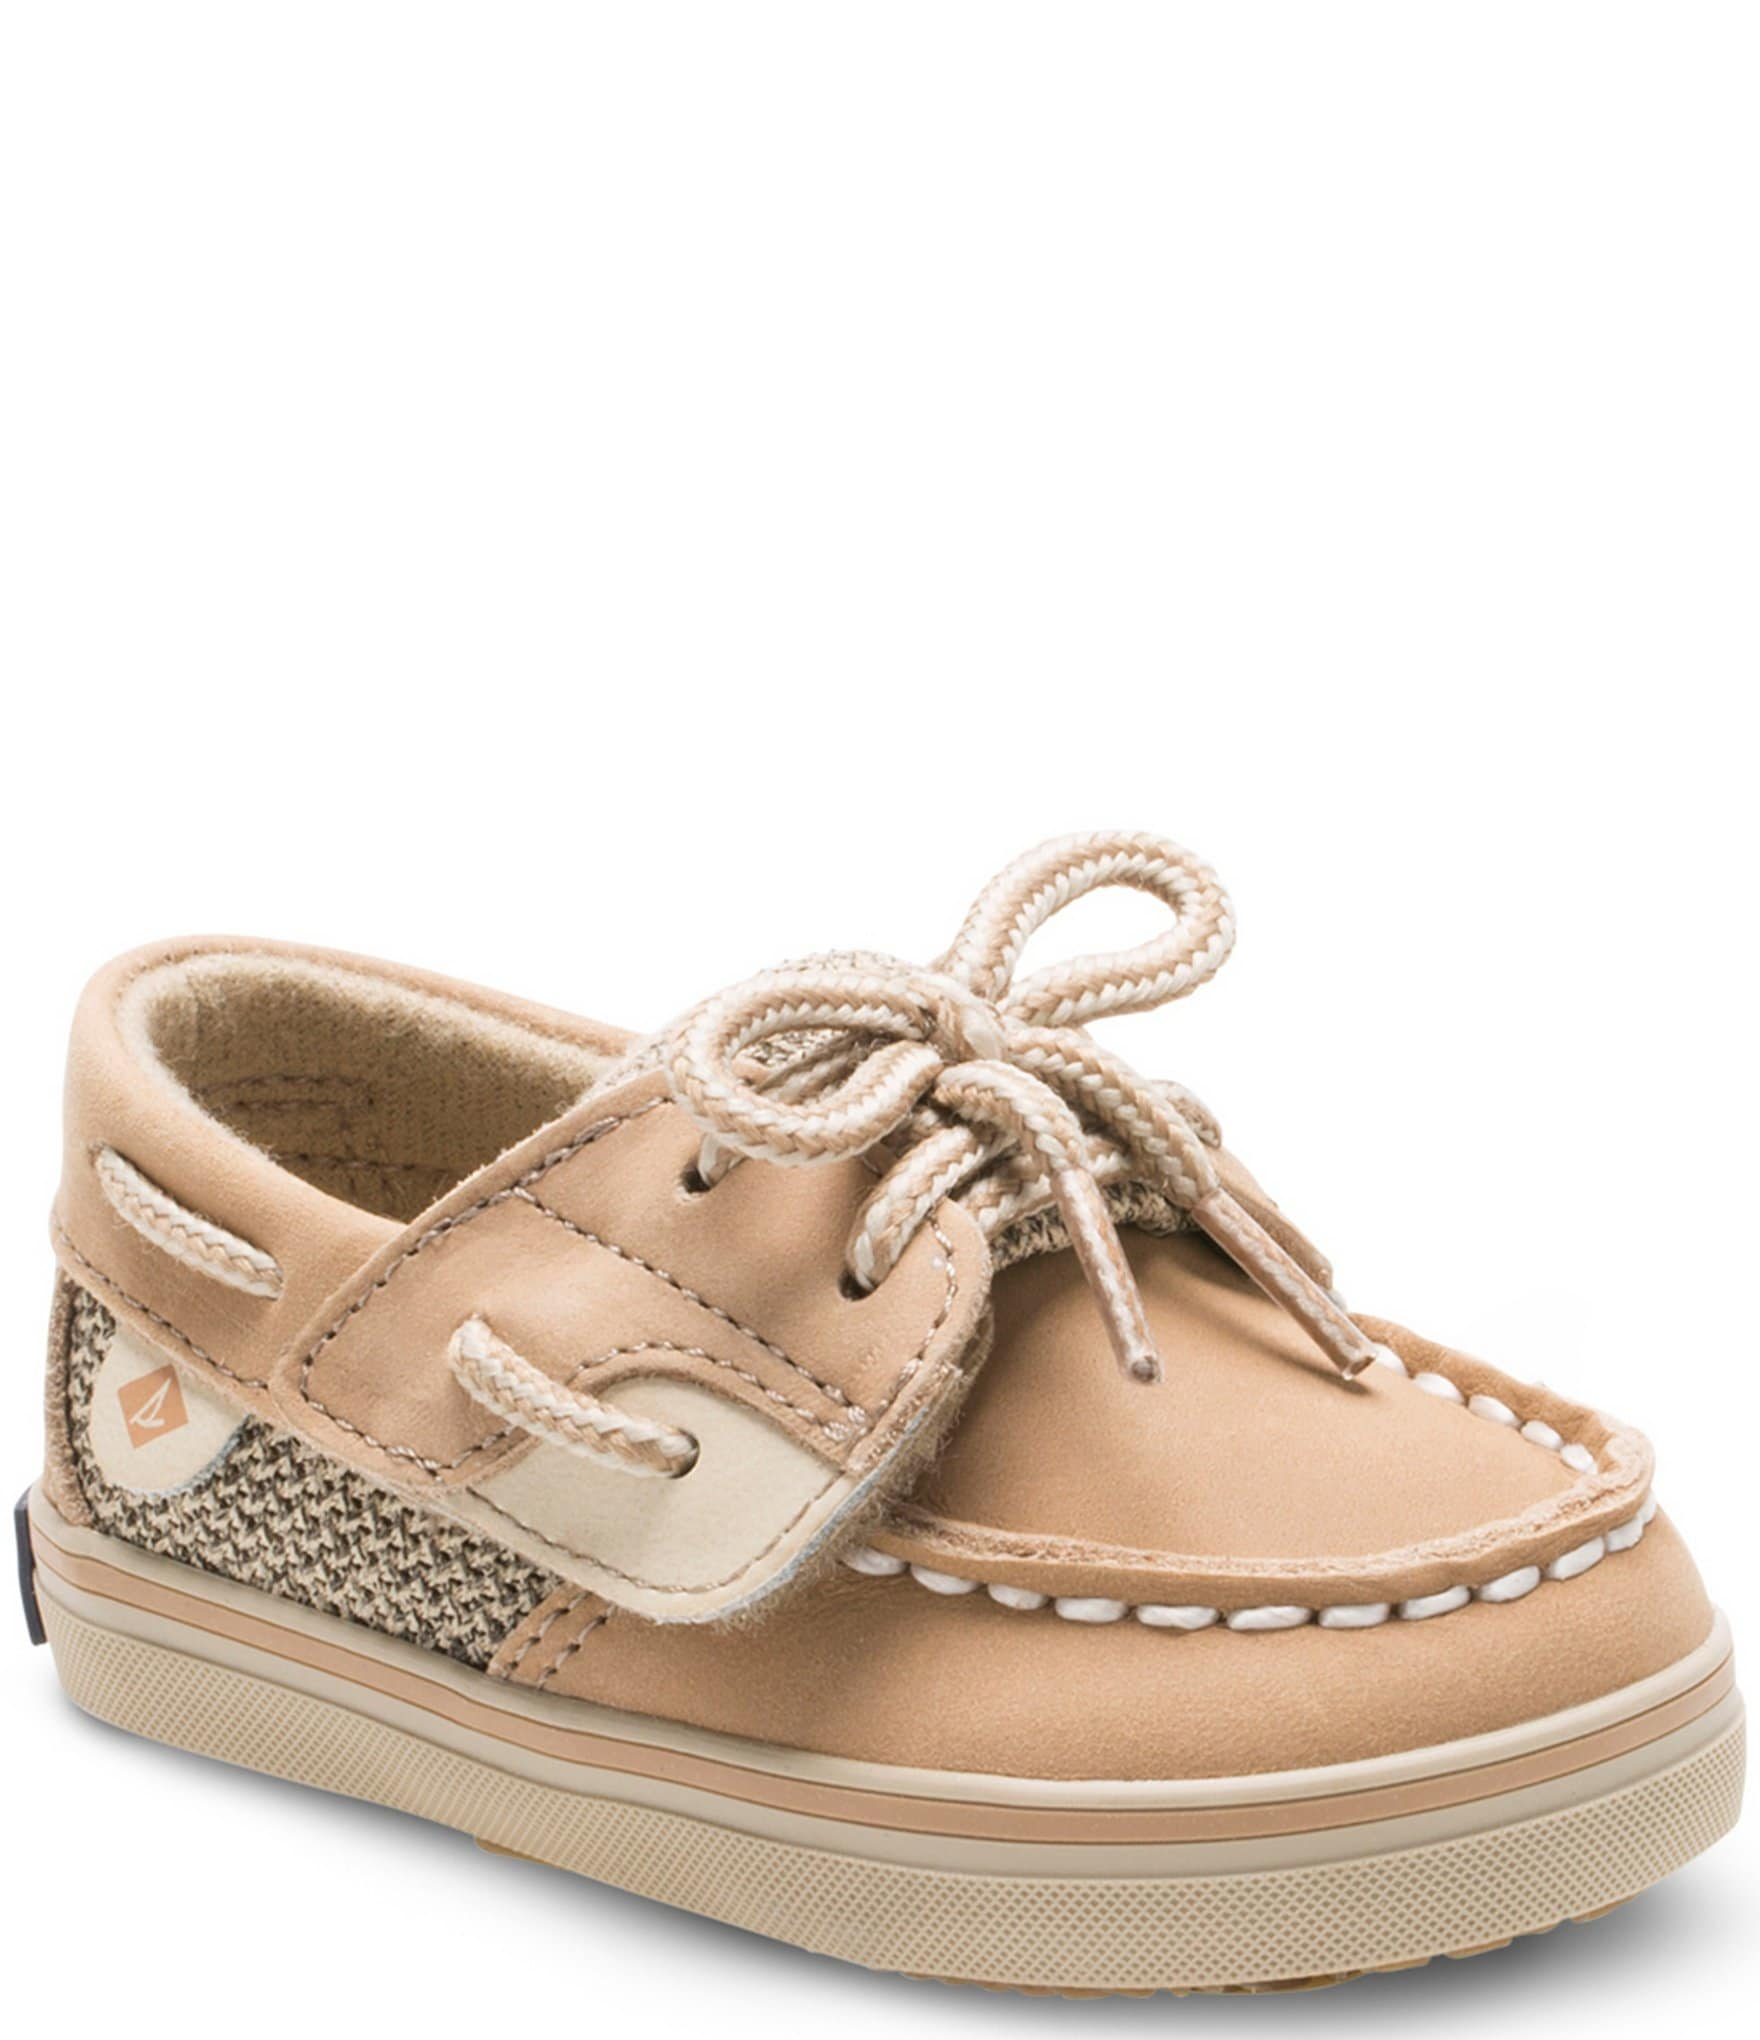 Sperry Brown Baby Boys' Shoes | Dillard's